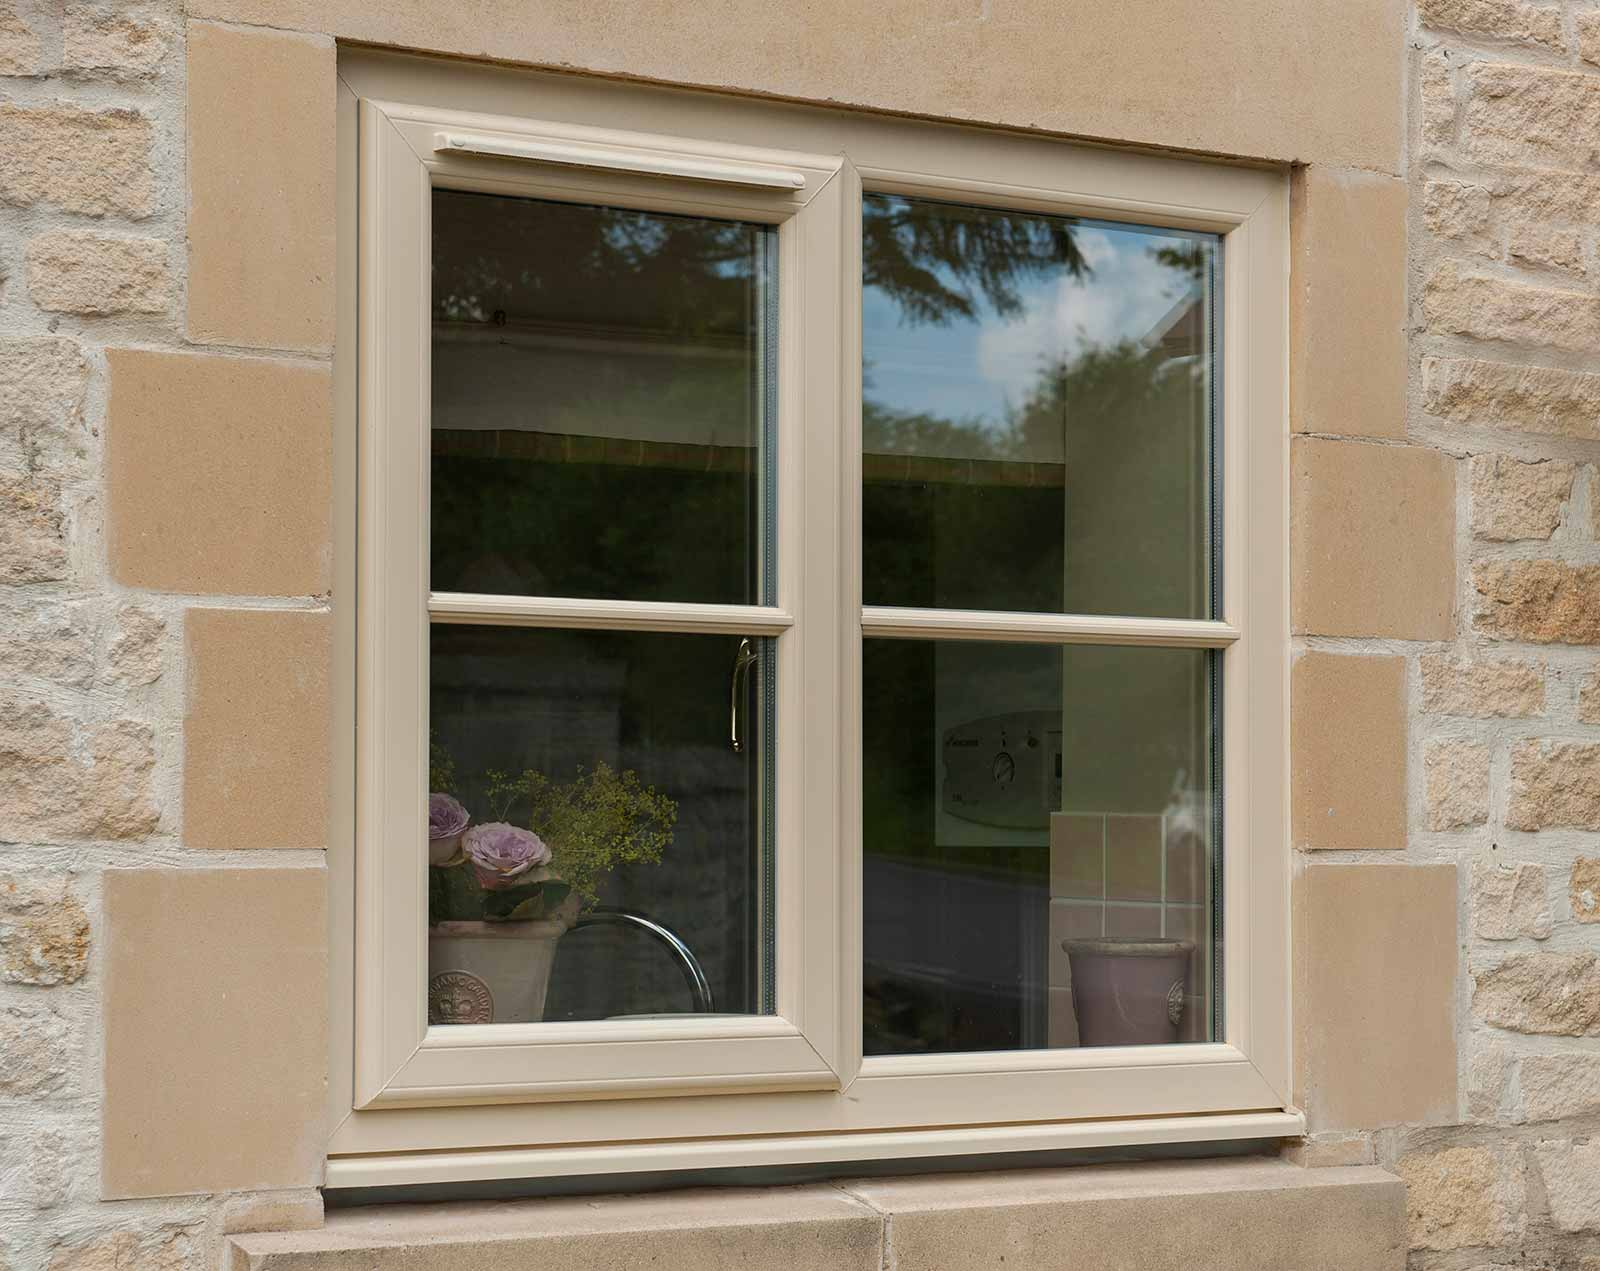 Upvc Casement Windows Clacton On Sea Casement Window